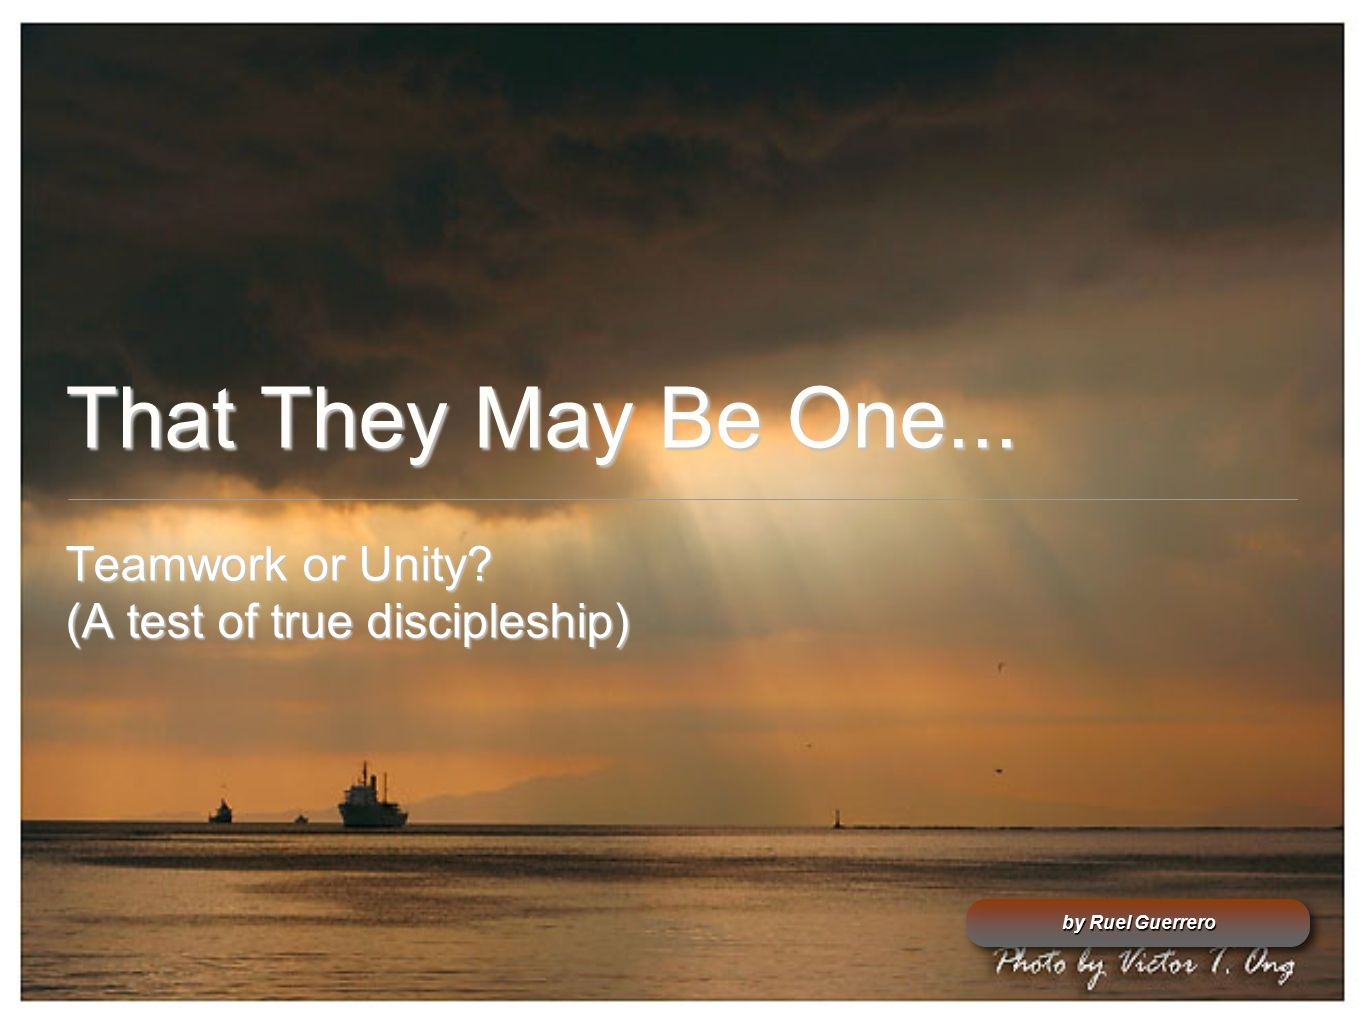 That They May Be One... Teamwork or Unity (A test of true discipleship) by Ruel Guerrero